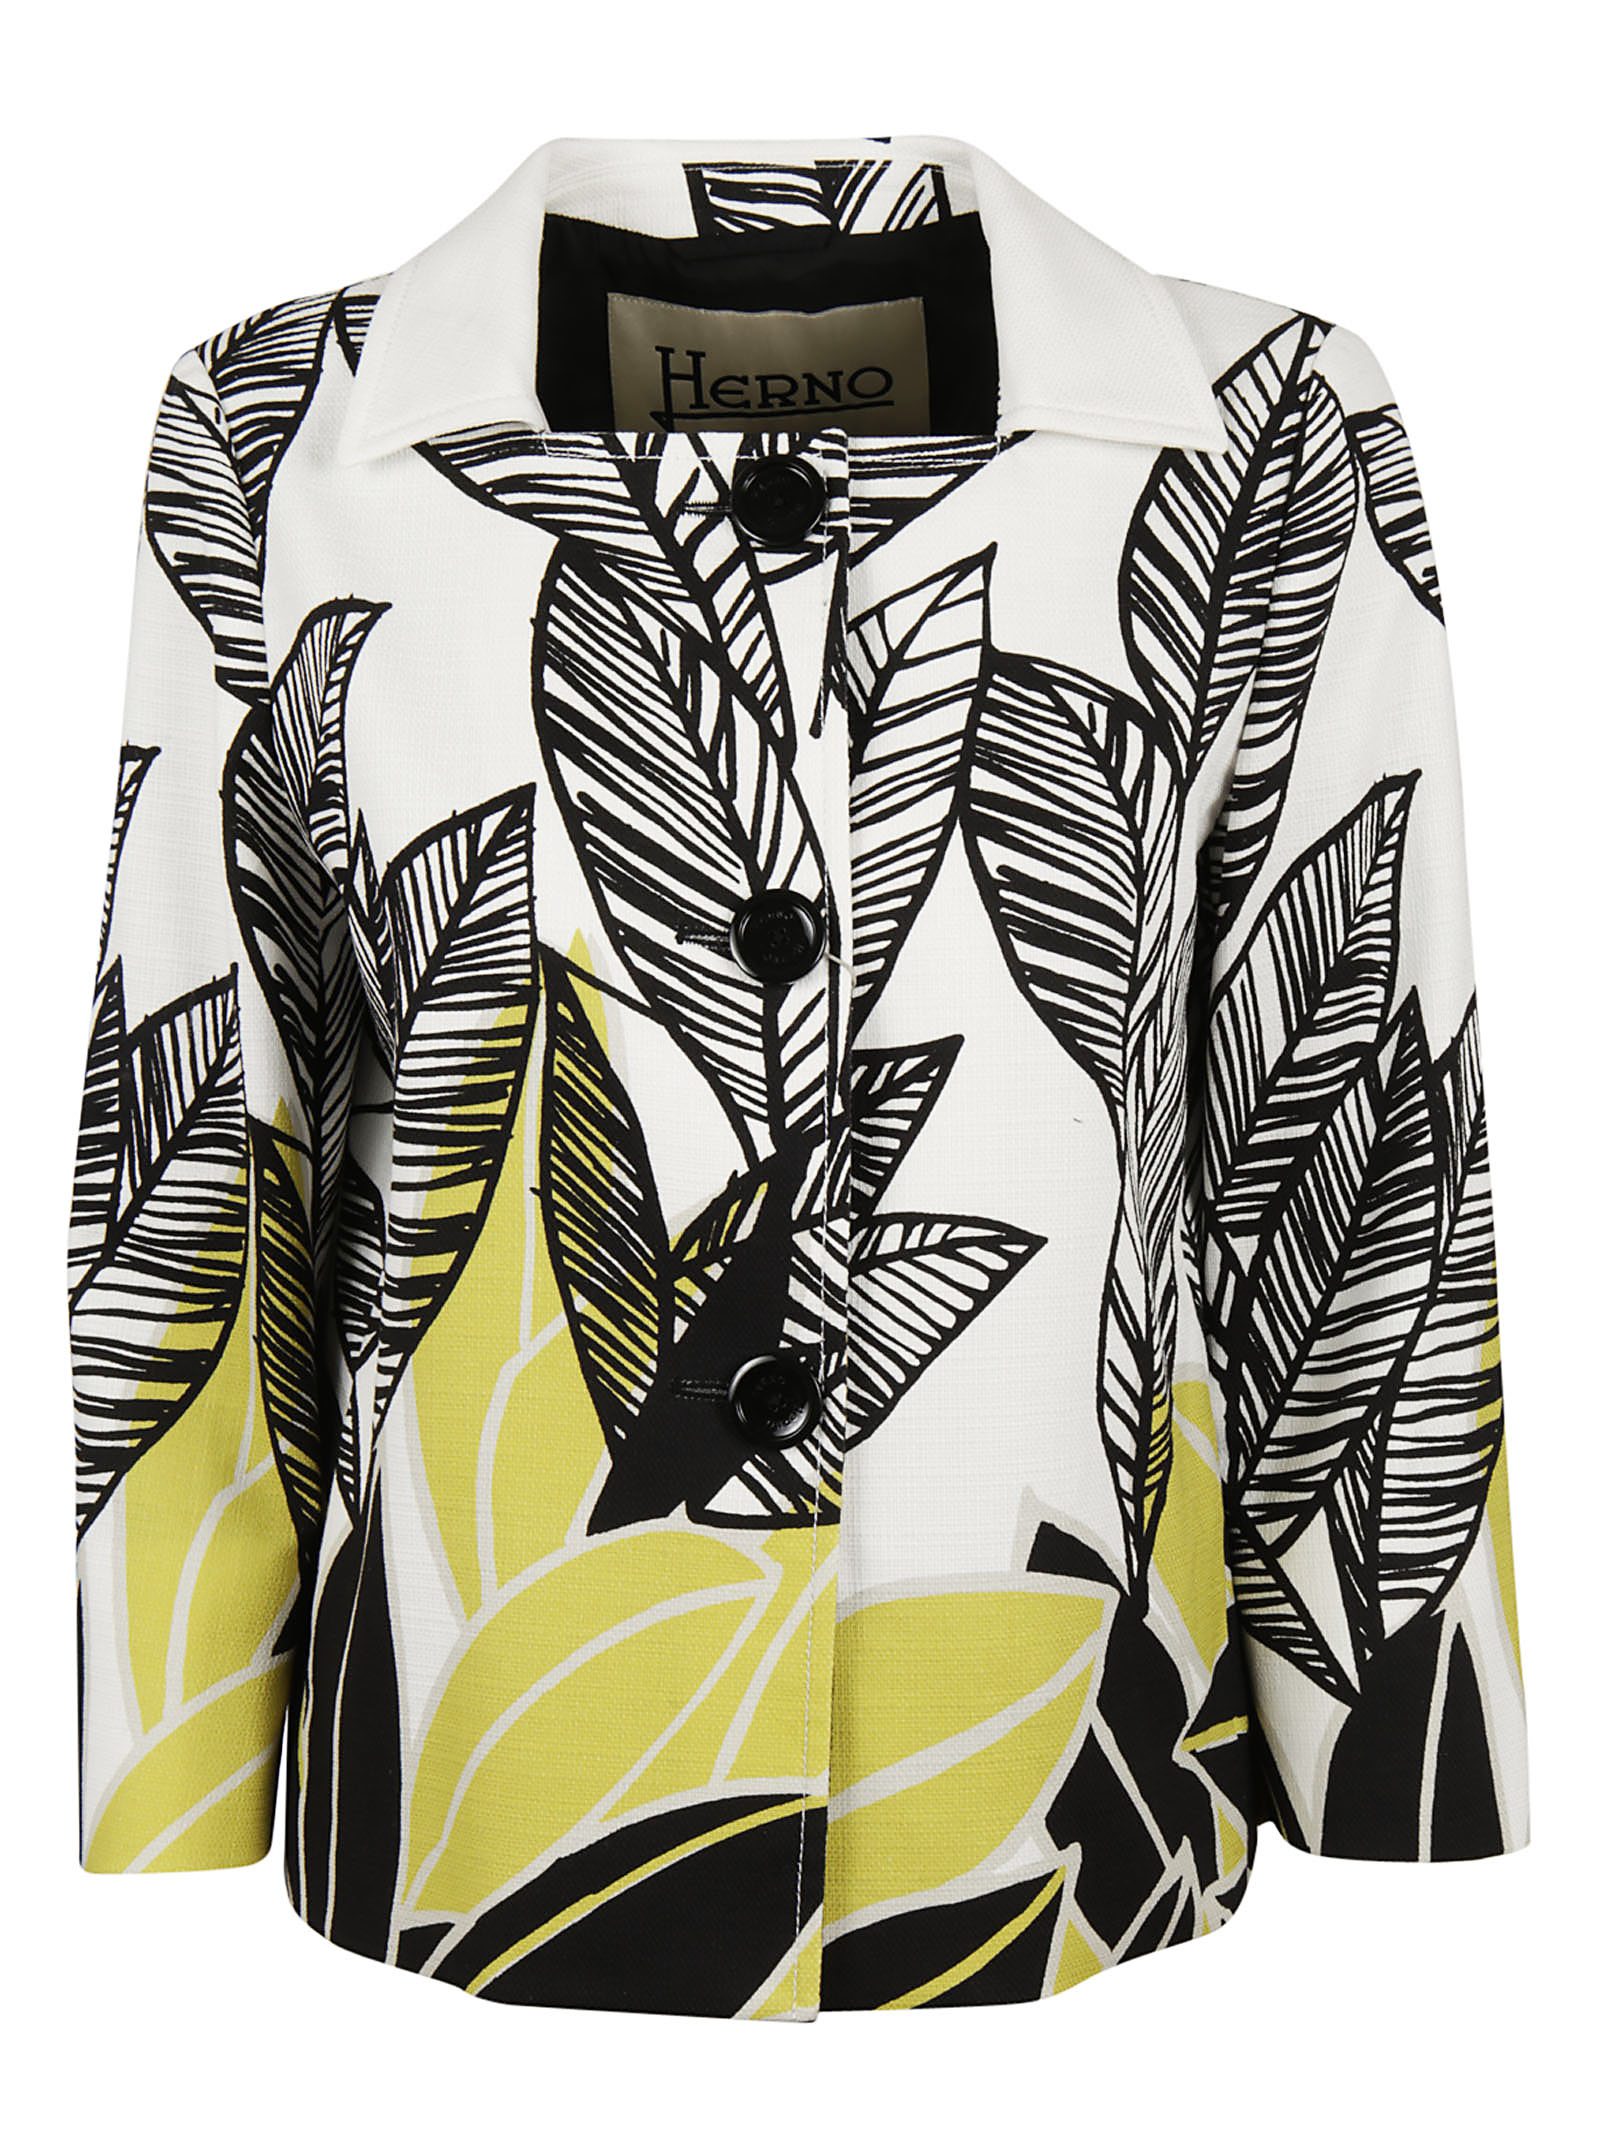 Herno Herno Printed Leaves Blazer